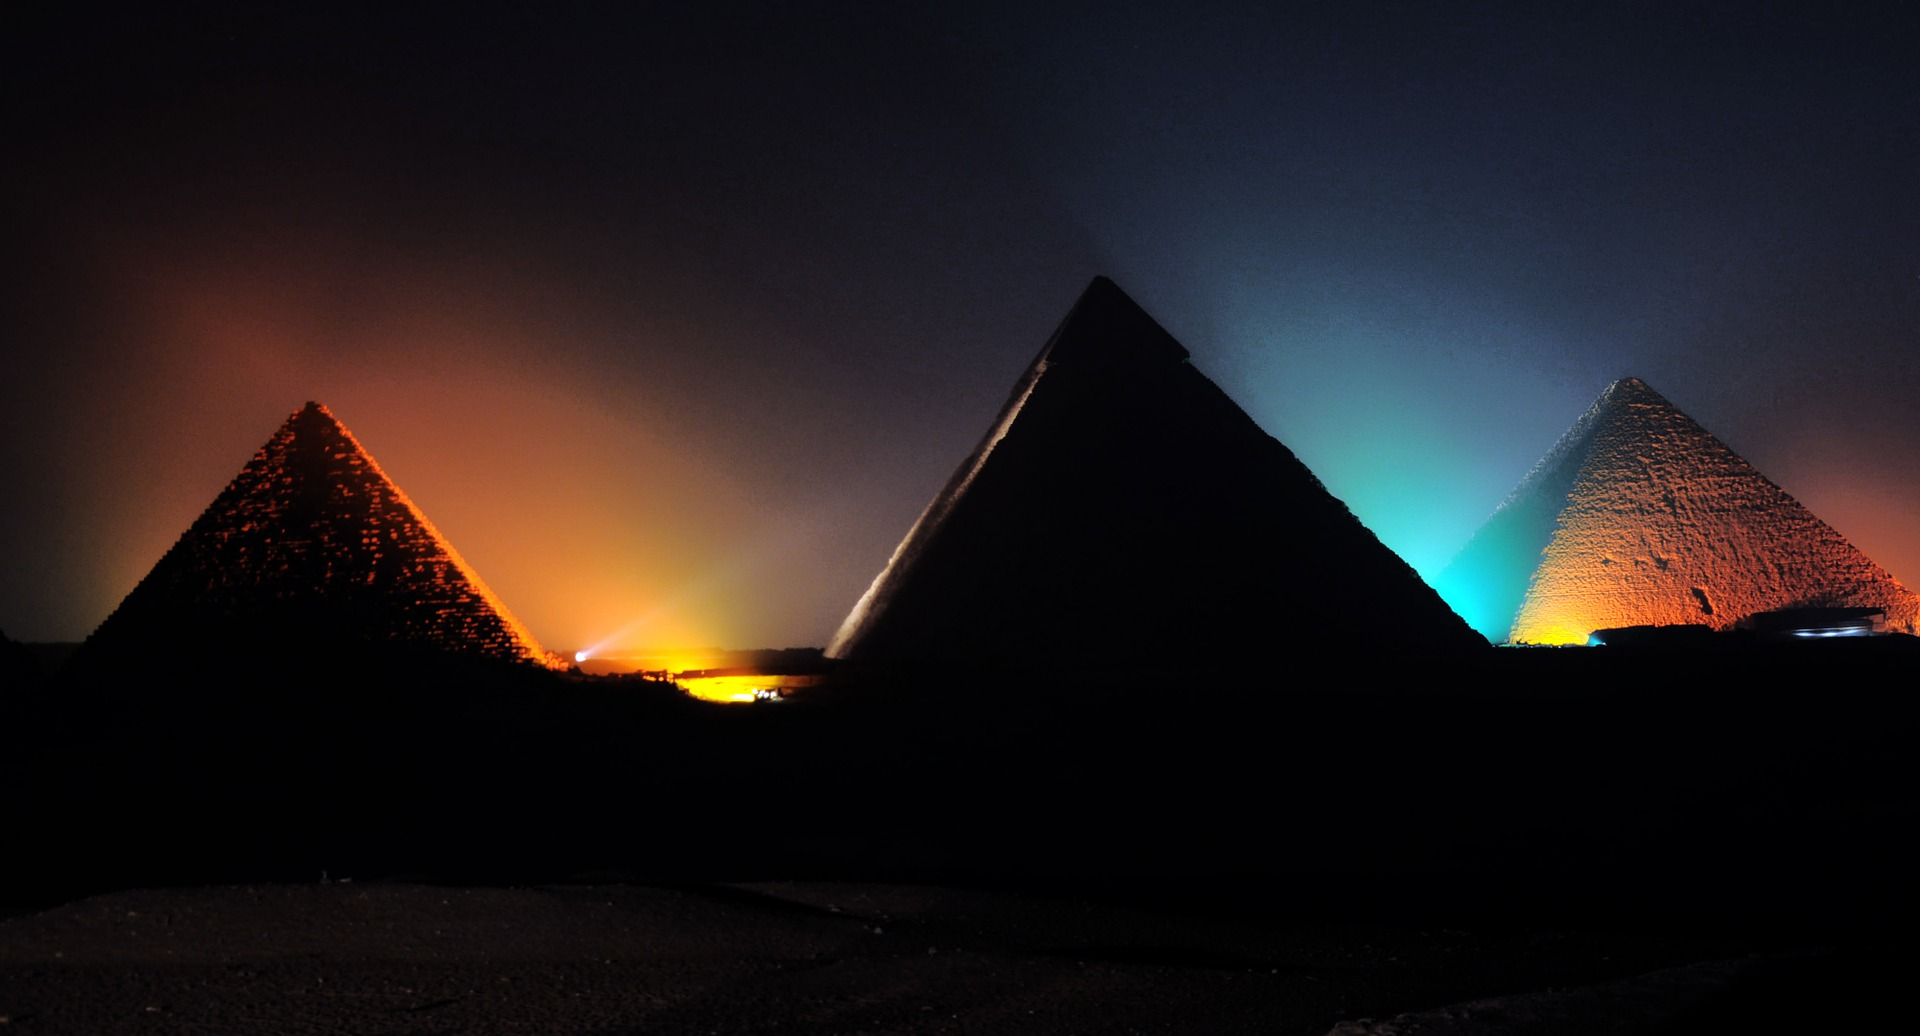 The Great Pyramid of Giza, Light Show